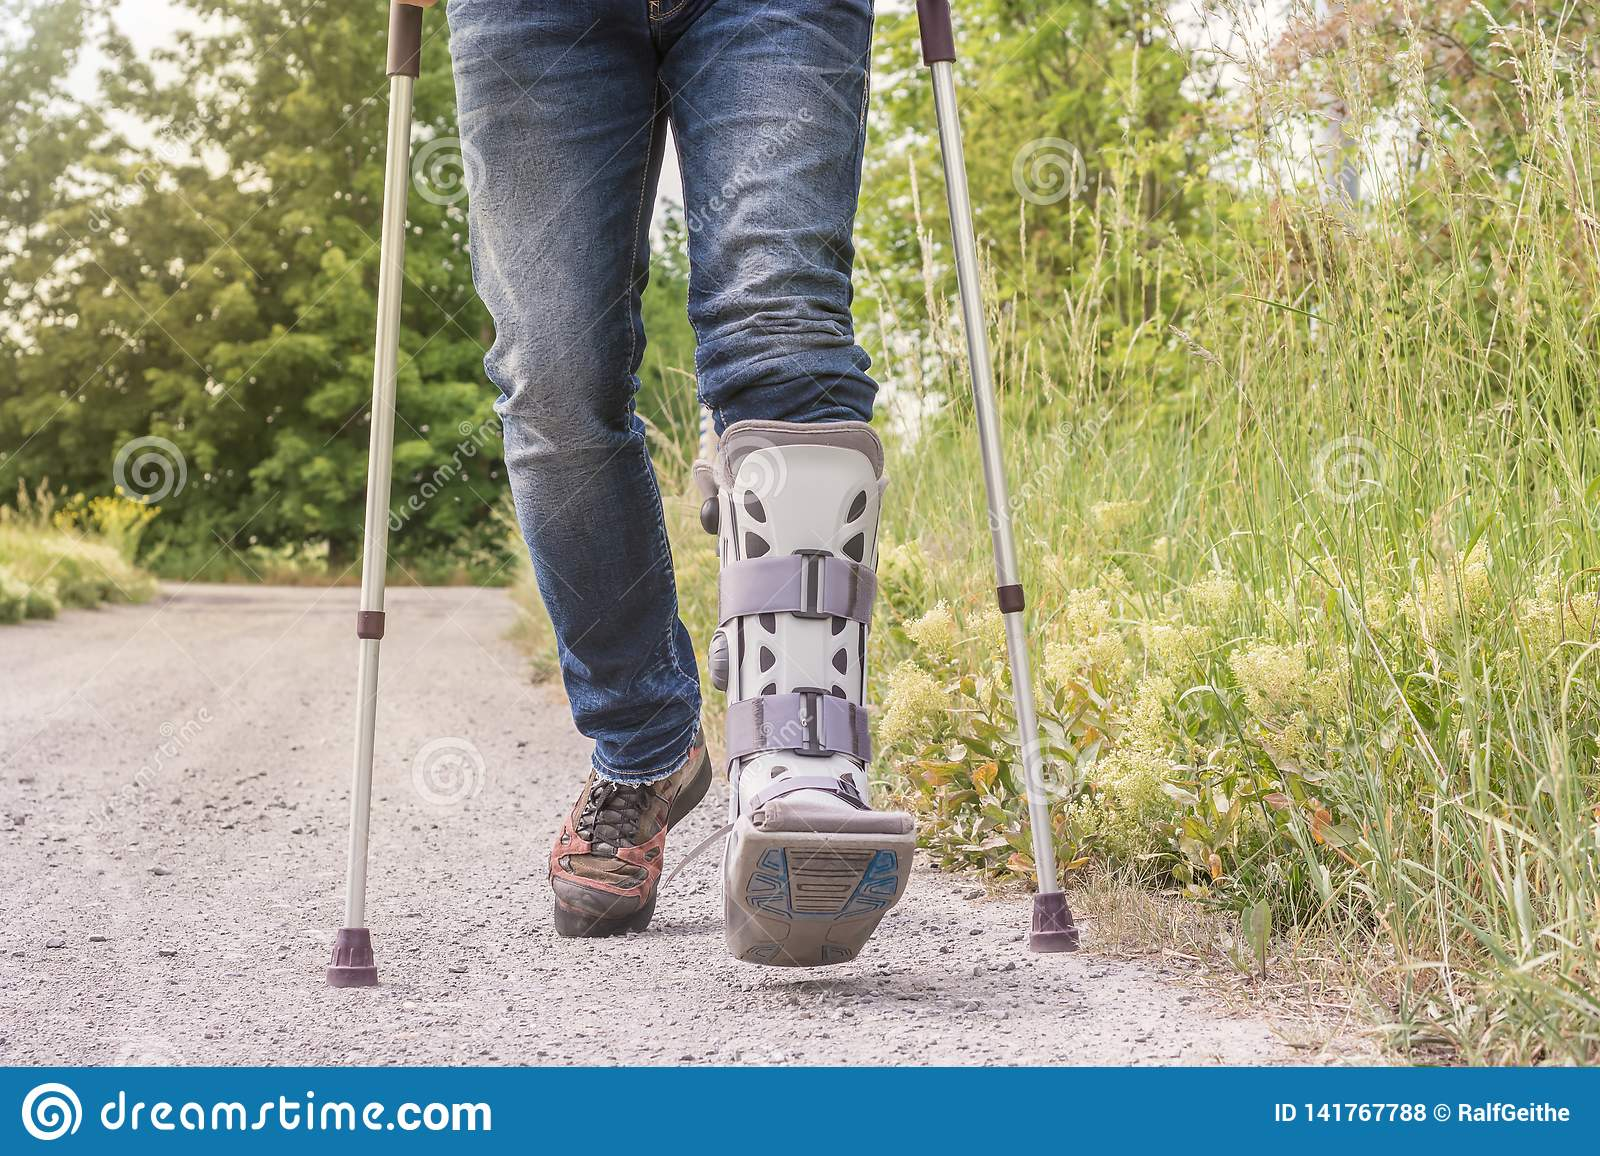 Man is running with an orthosis and walking aids on a dirt road